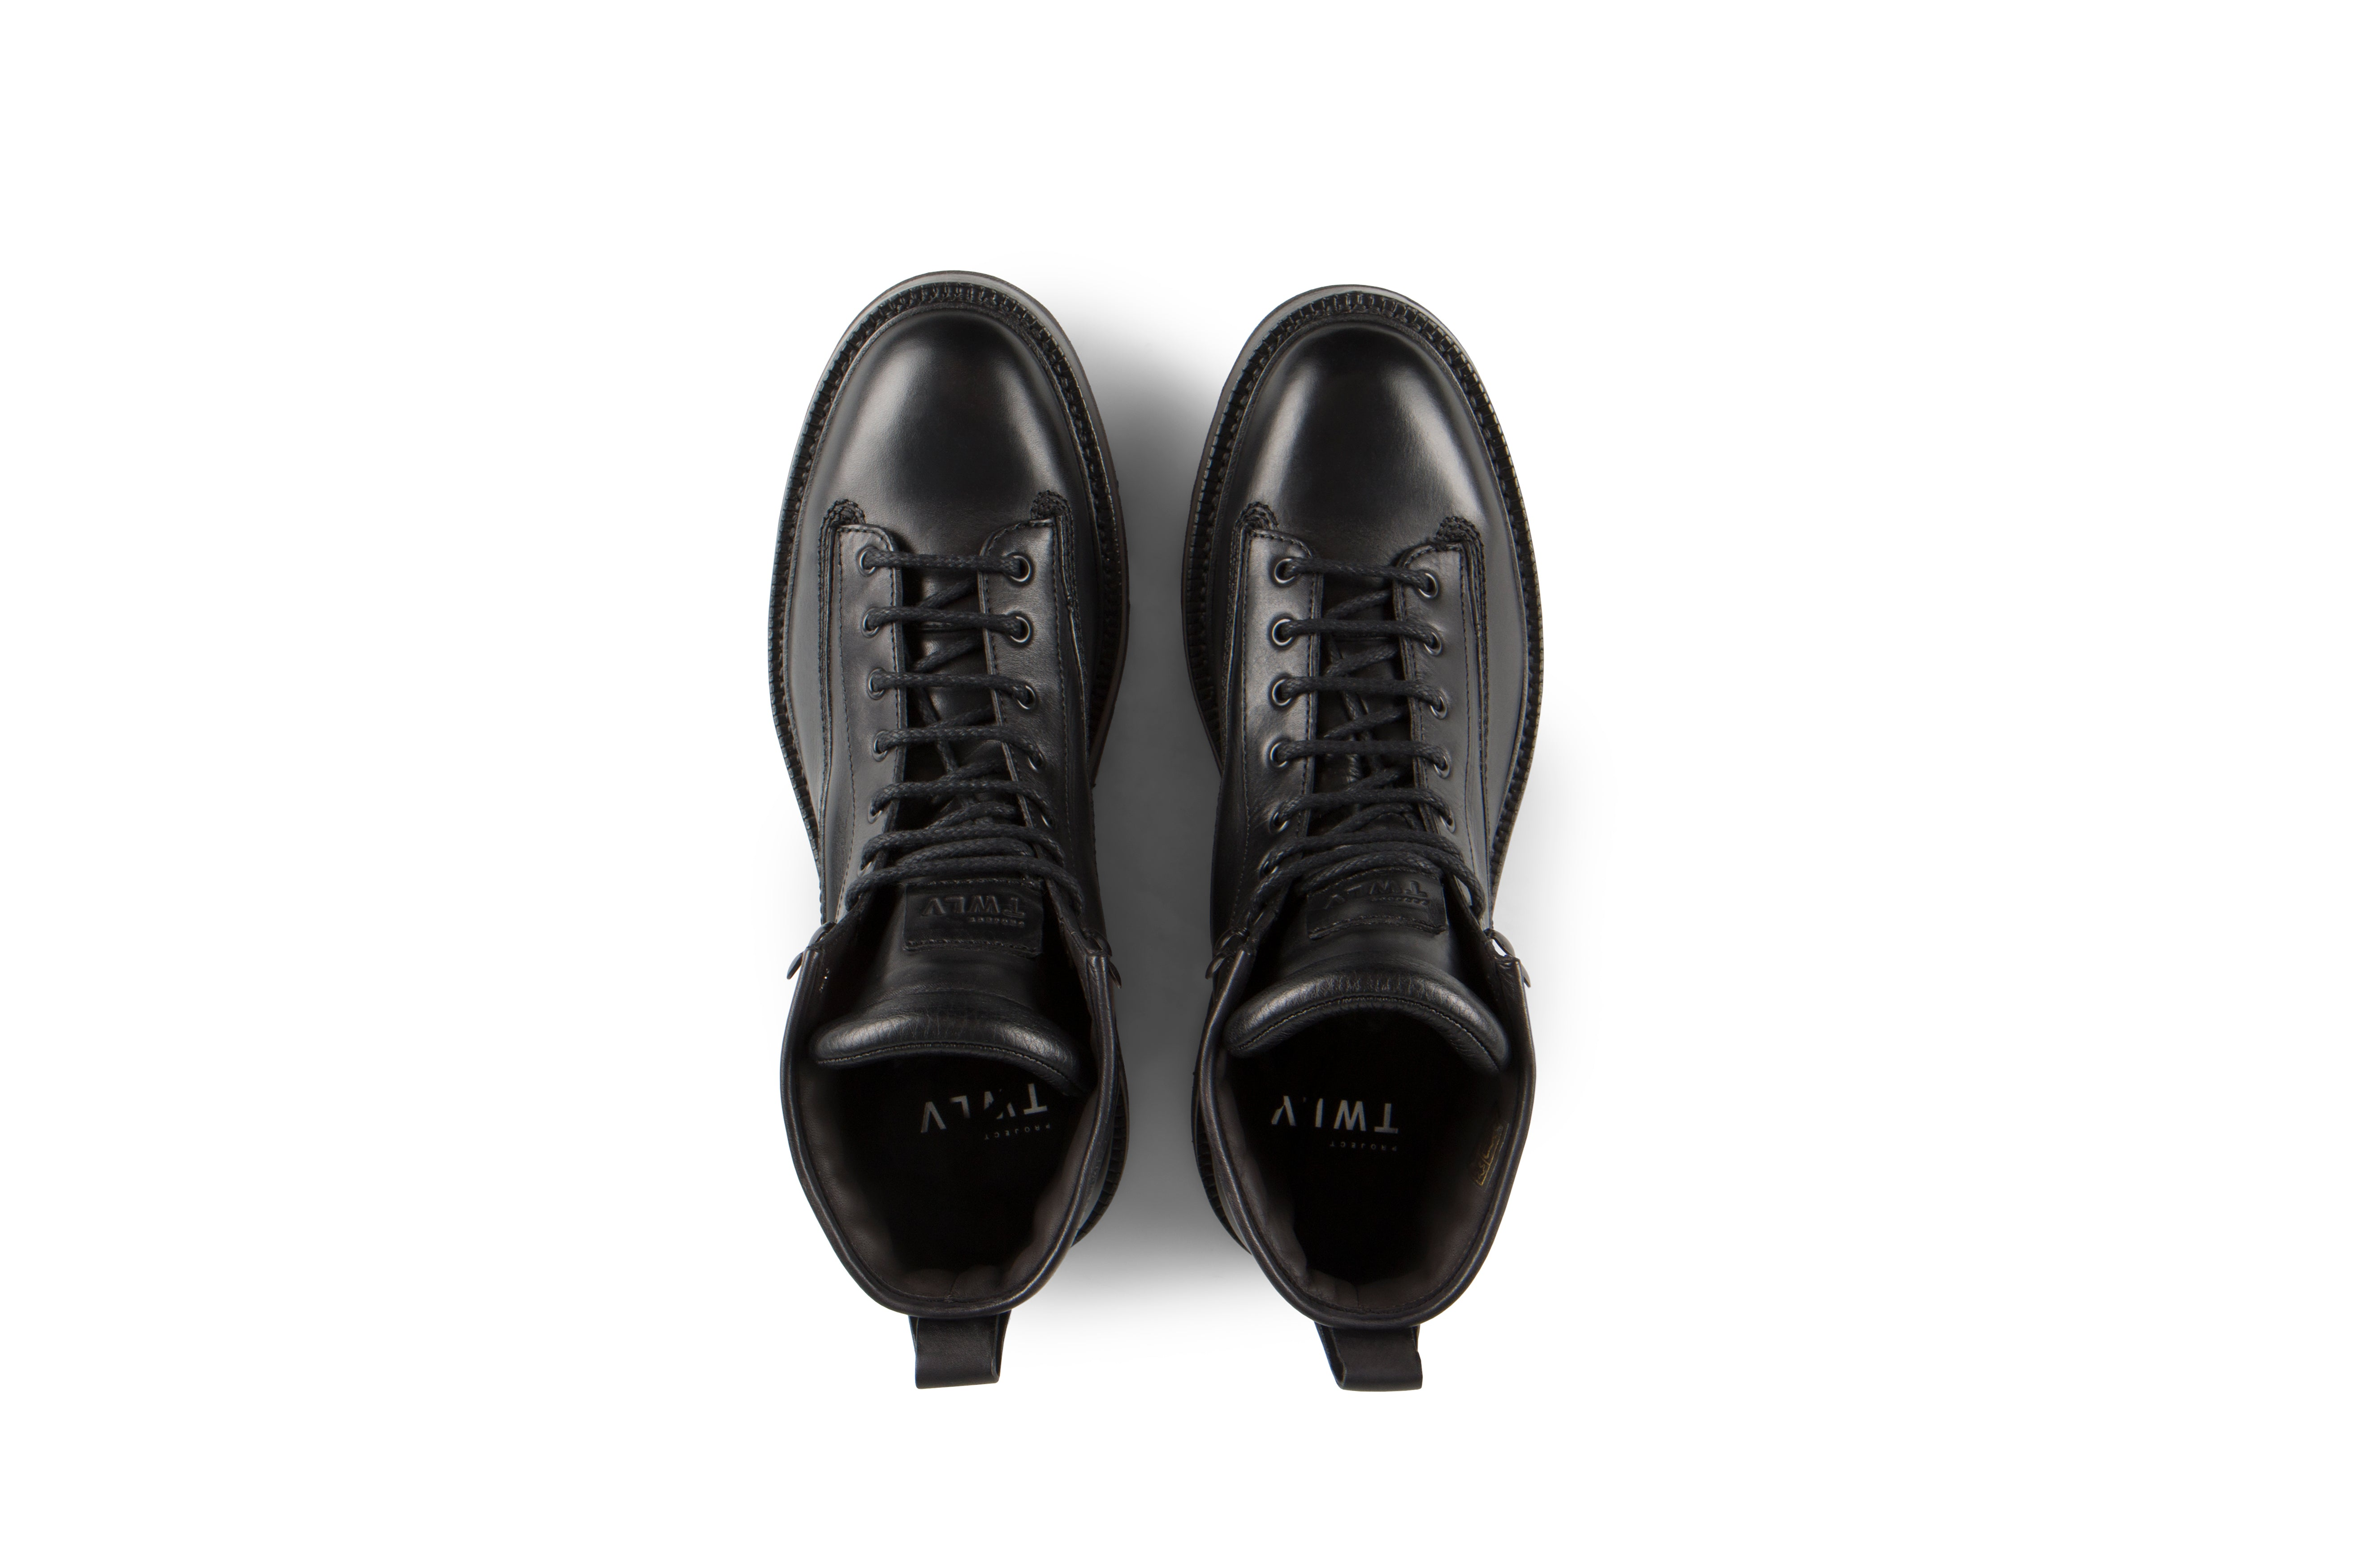 New Season - Nexx Black Vegetable Tanned Balmoral Leather Boots